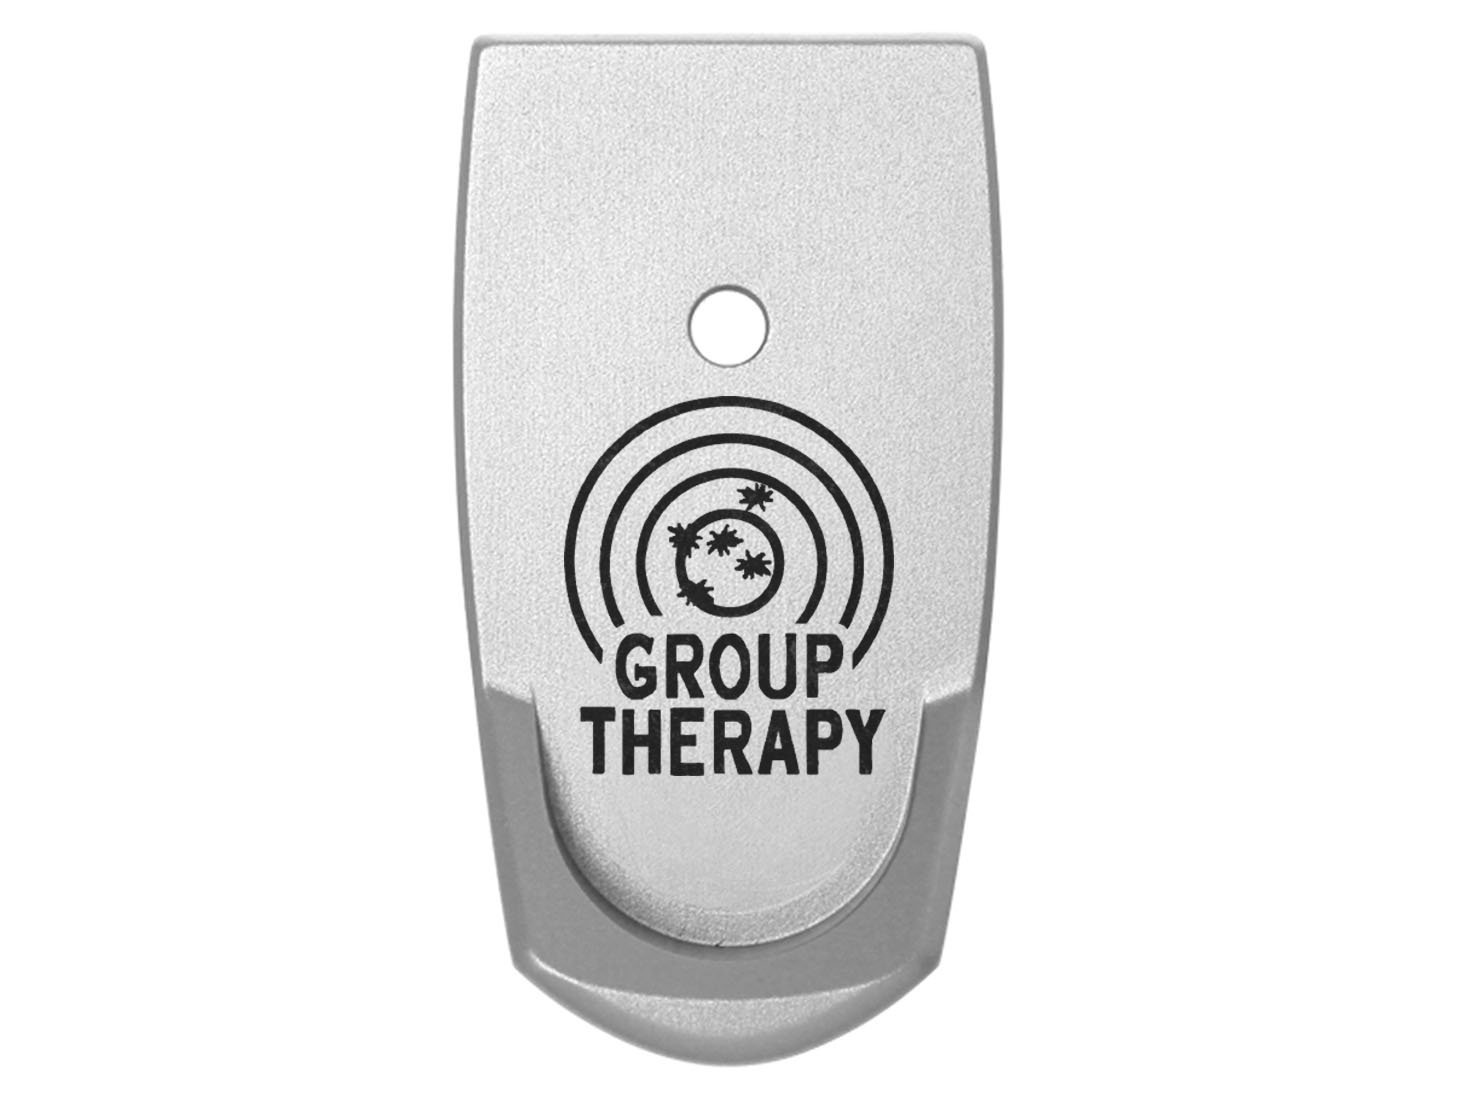 Group Therapy Target Grip Extension Floor Base Plate V2 Silver Silver for S&W Smith & Wesson Shield 9mm .40